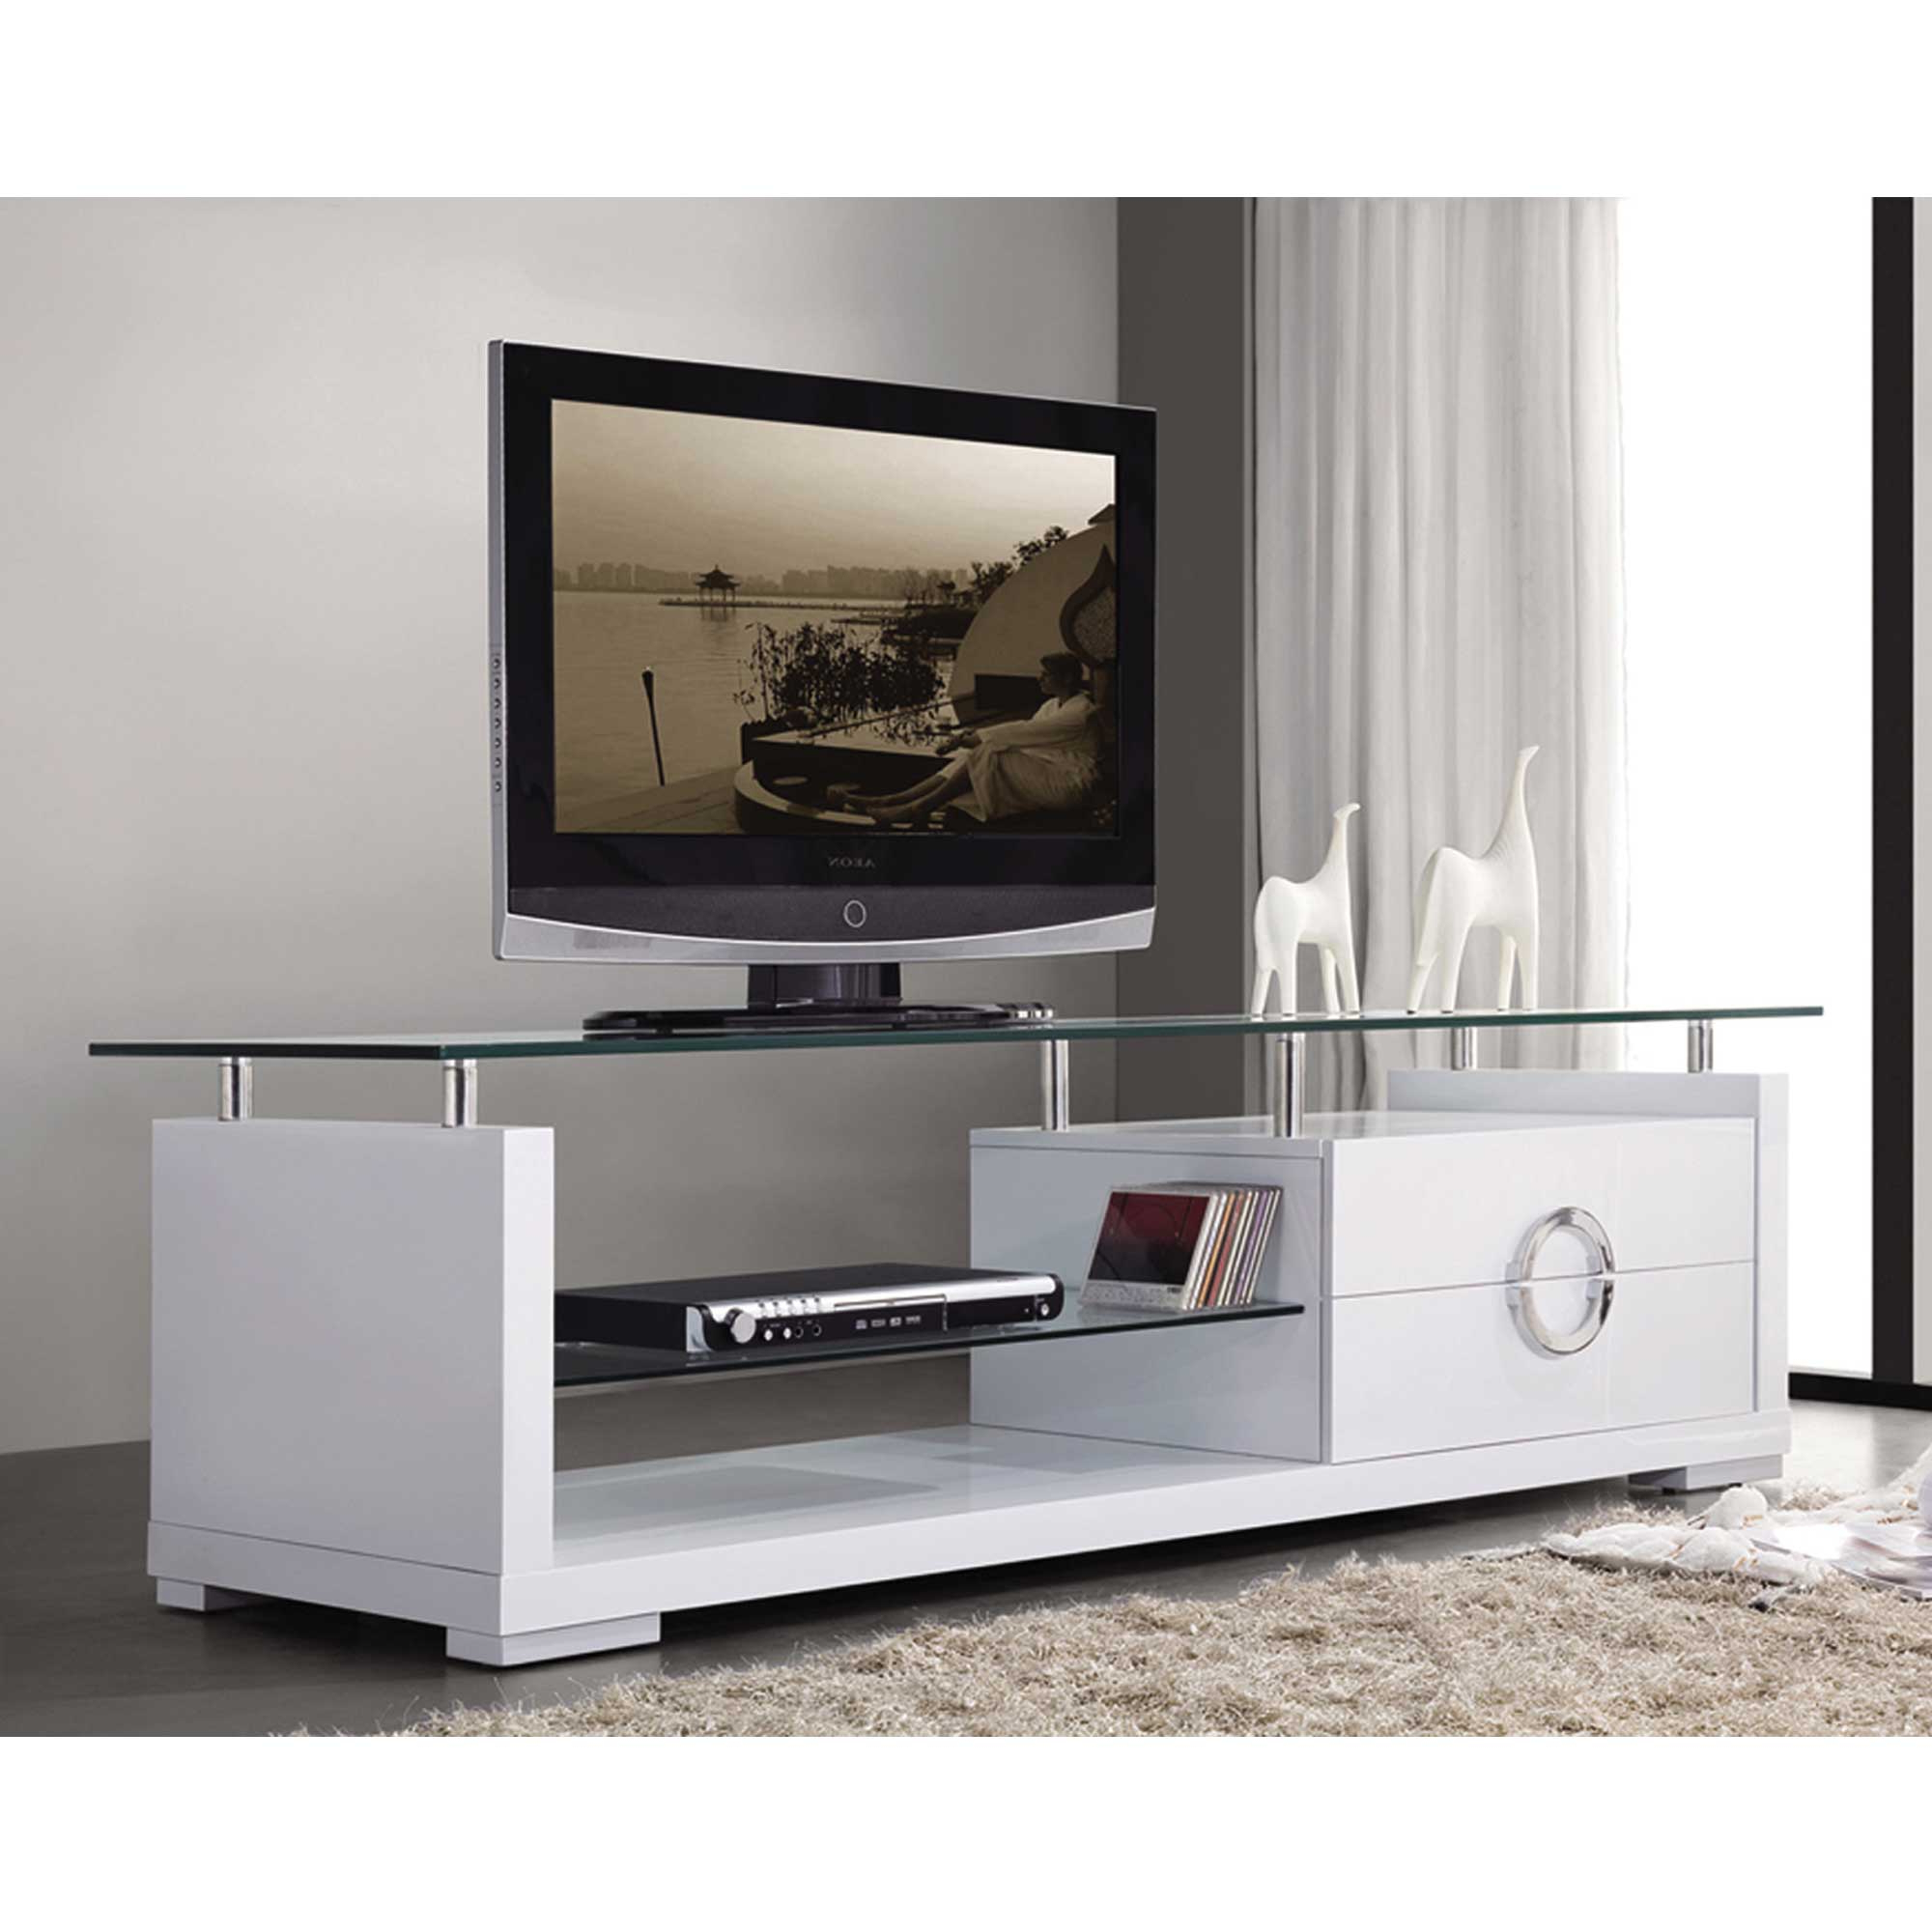 Most Recent Contemporary Tv Stand – Home Deco For White Contemporary Tv Stands (View 10 of 20)